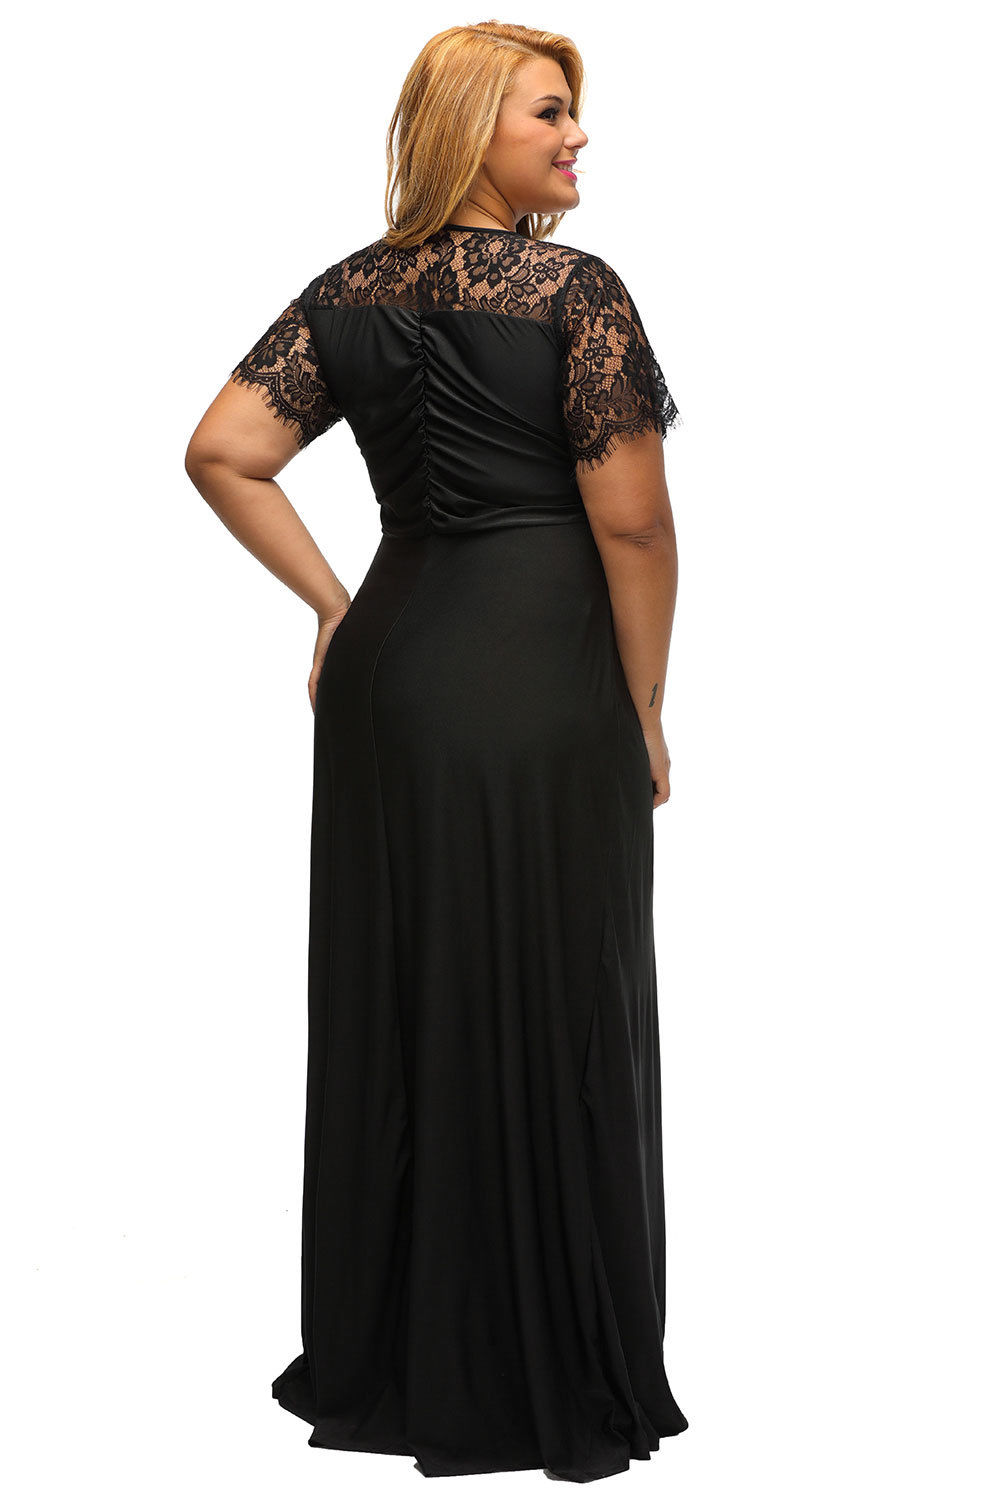 Cool USA Plus Size Womens Formal Gown Wedding Bridesmaid Evening ...